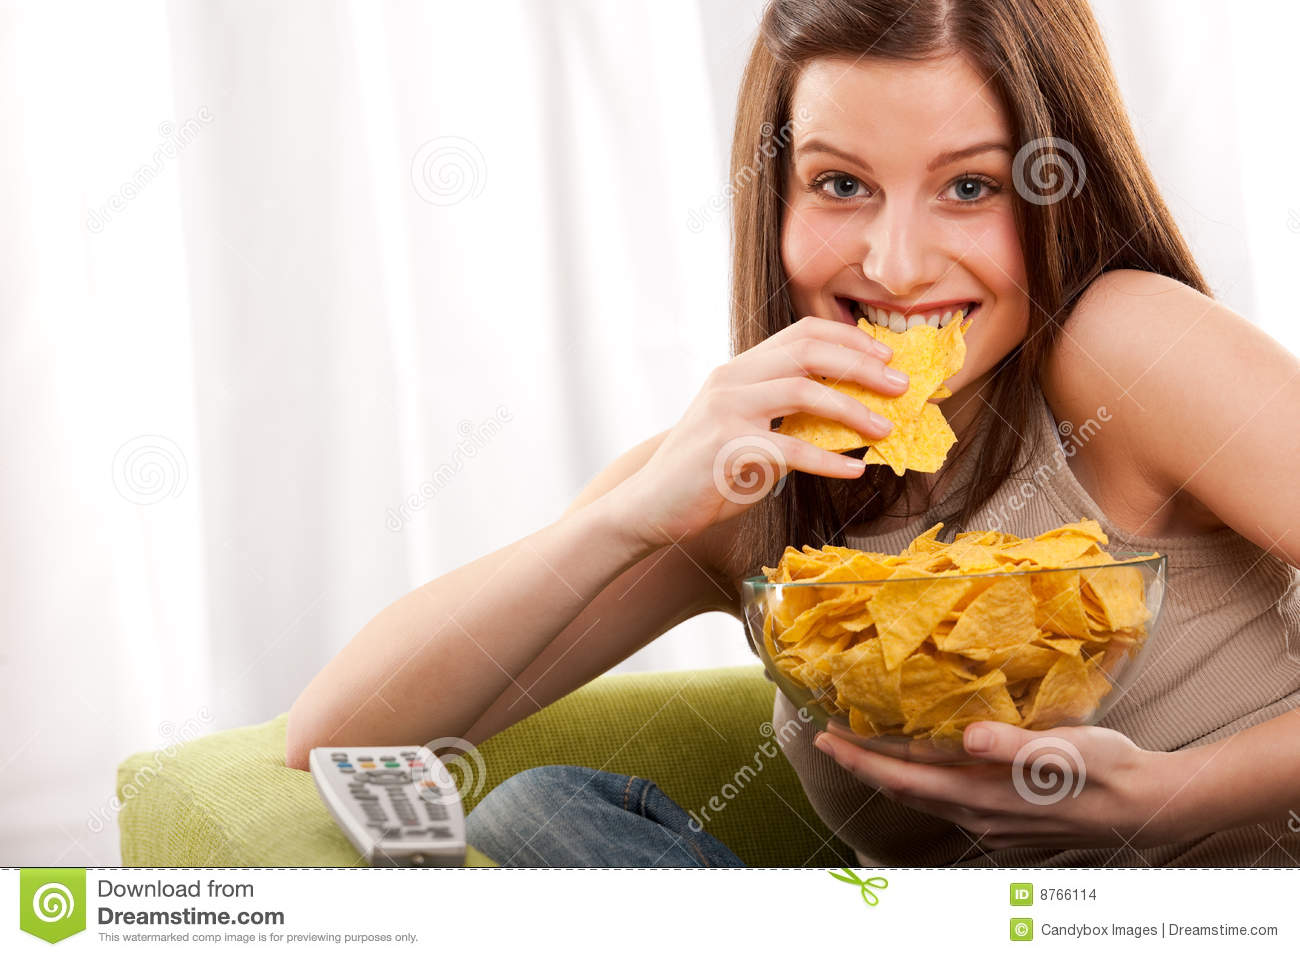 Image result for woman alone eating funny